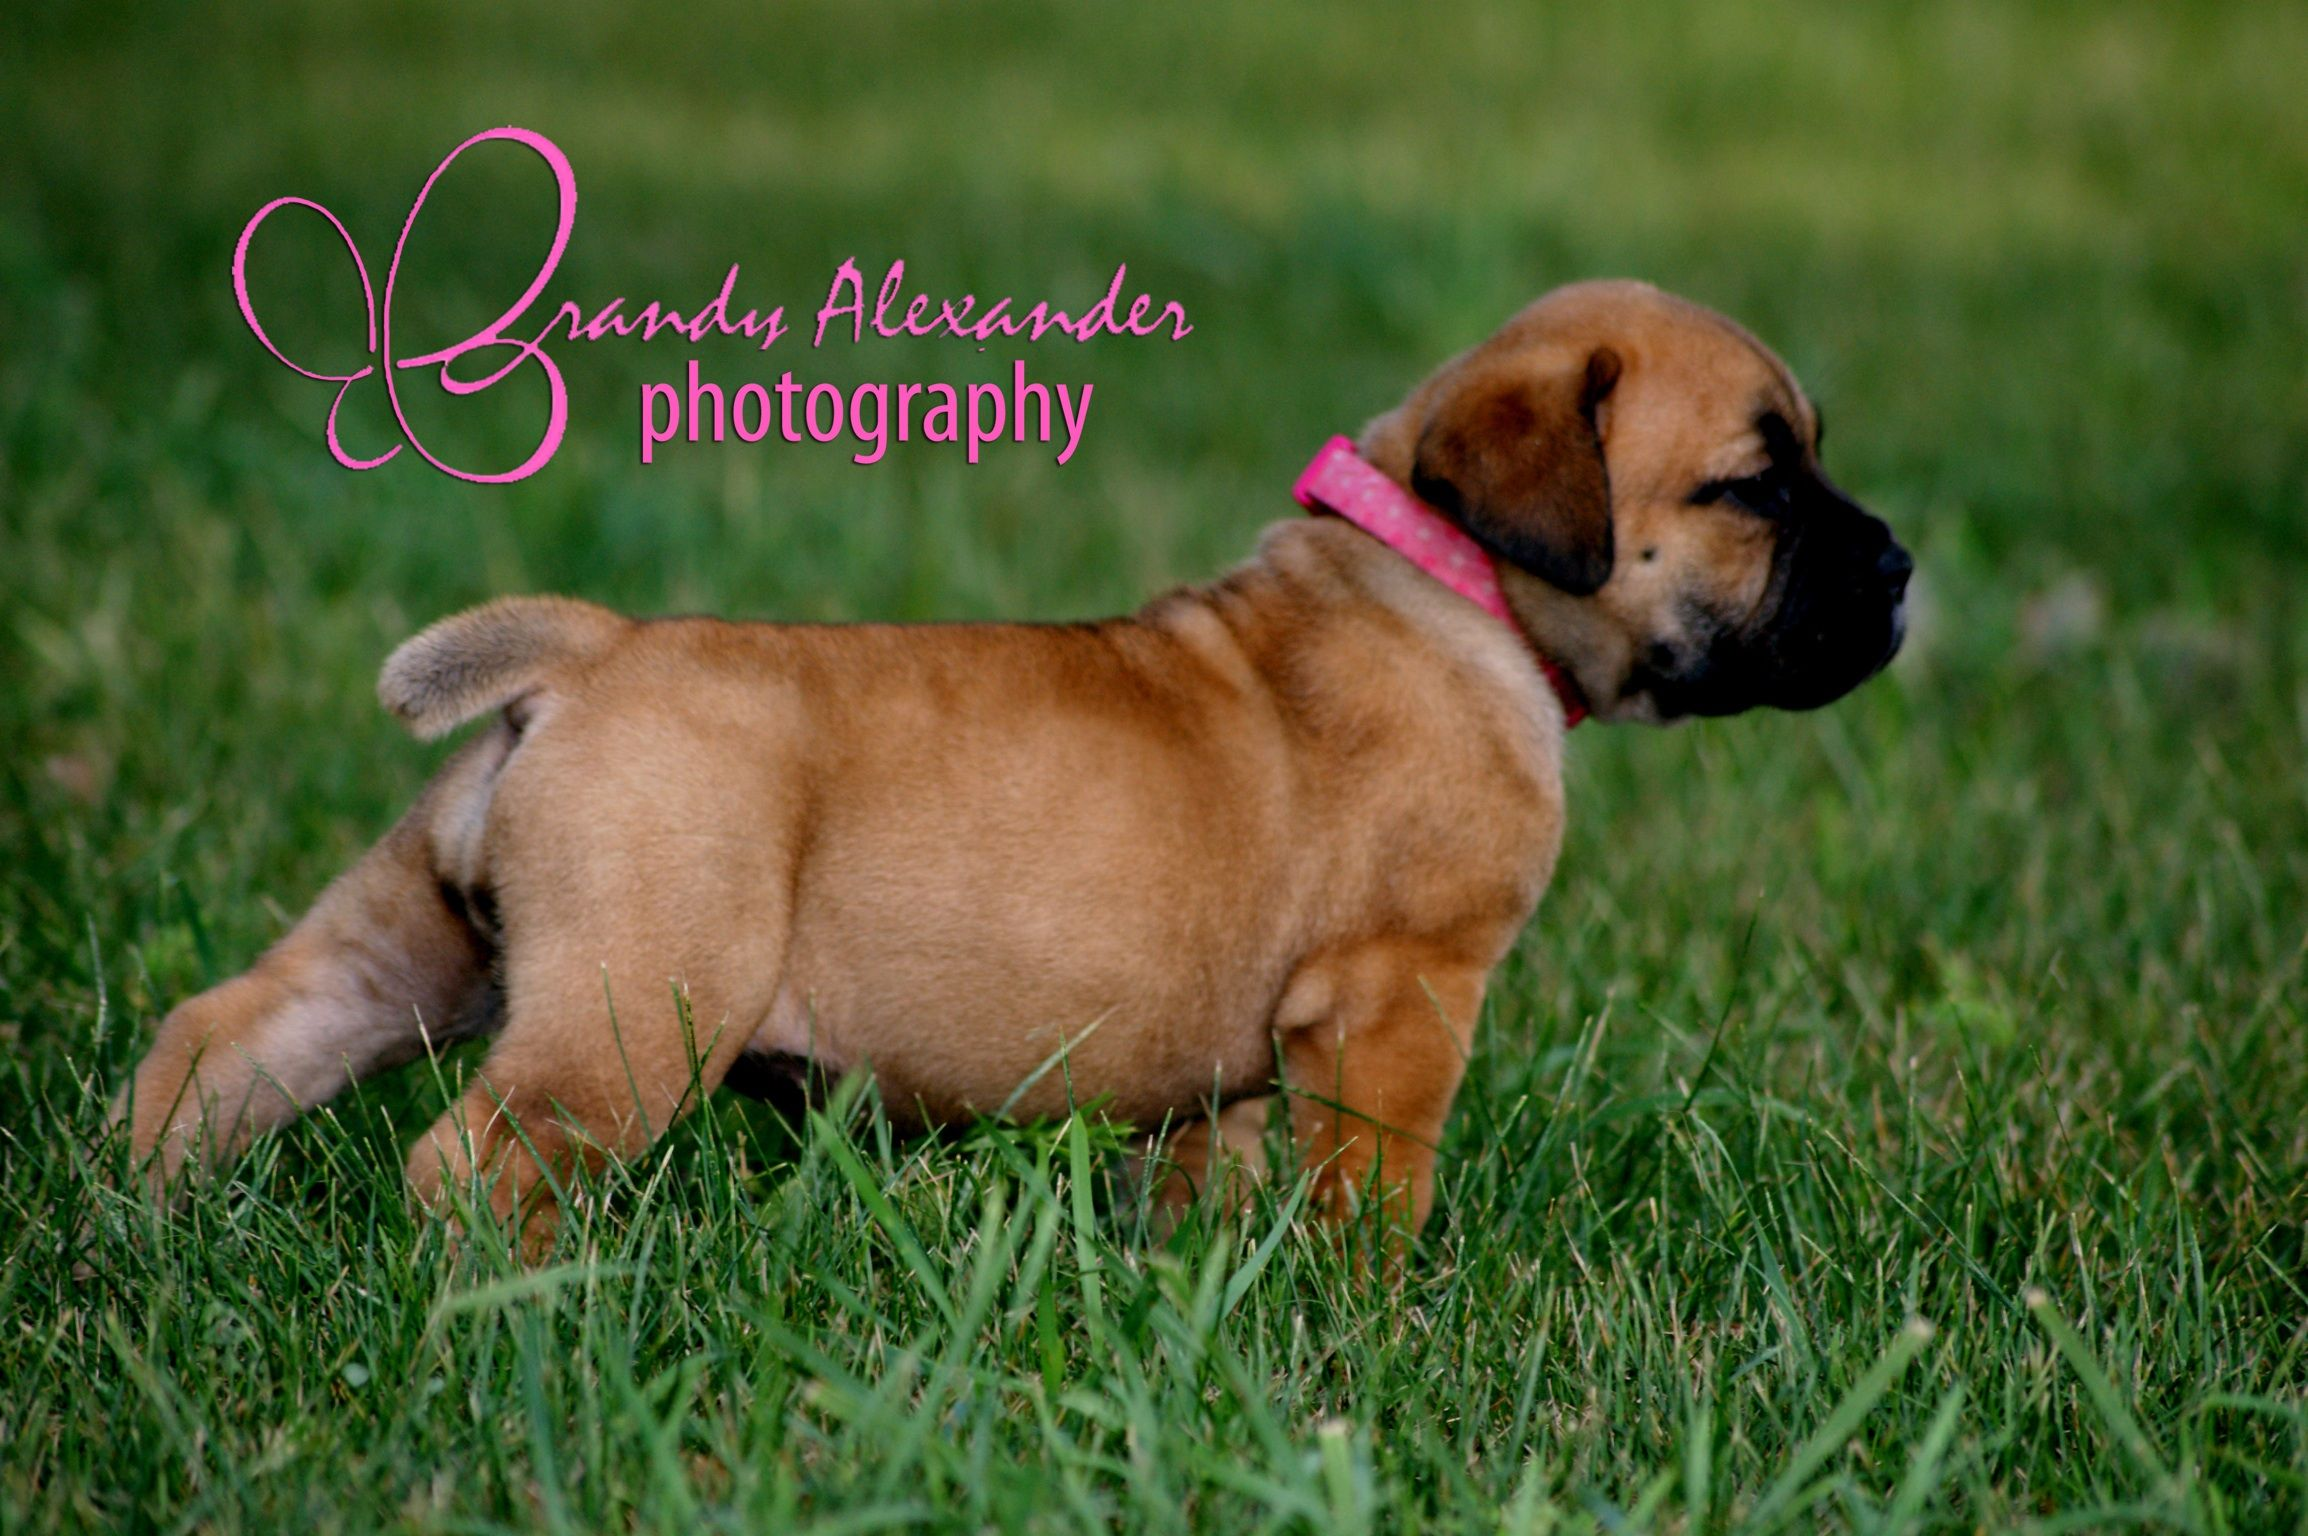 Boerboel Puppy Michigan Www Greatlakesboerboels Com Www Brandyalexanderphotography Com Boerboel Puppies Cute Puppies